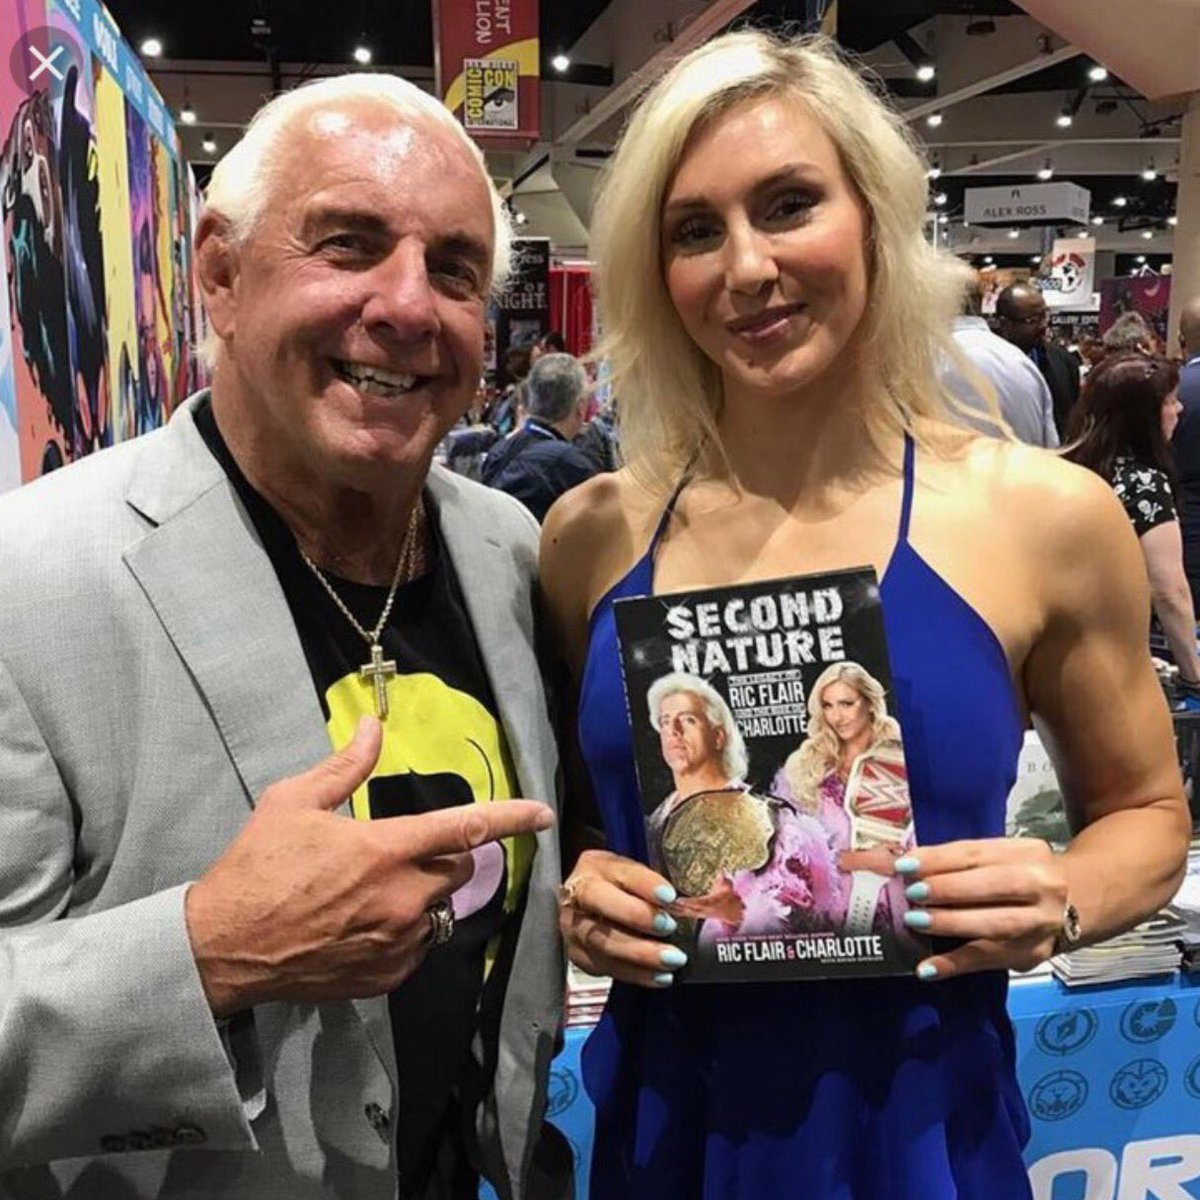 Make Your List And Check It Twice Because The Queen And I's Book #SecondNature Is The Only Thing Going This Holiday Season!! WOOOOO! SecondNatureBook.com